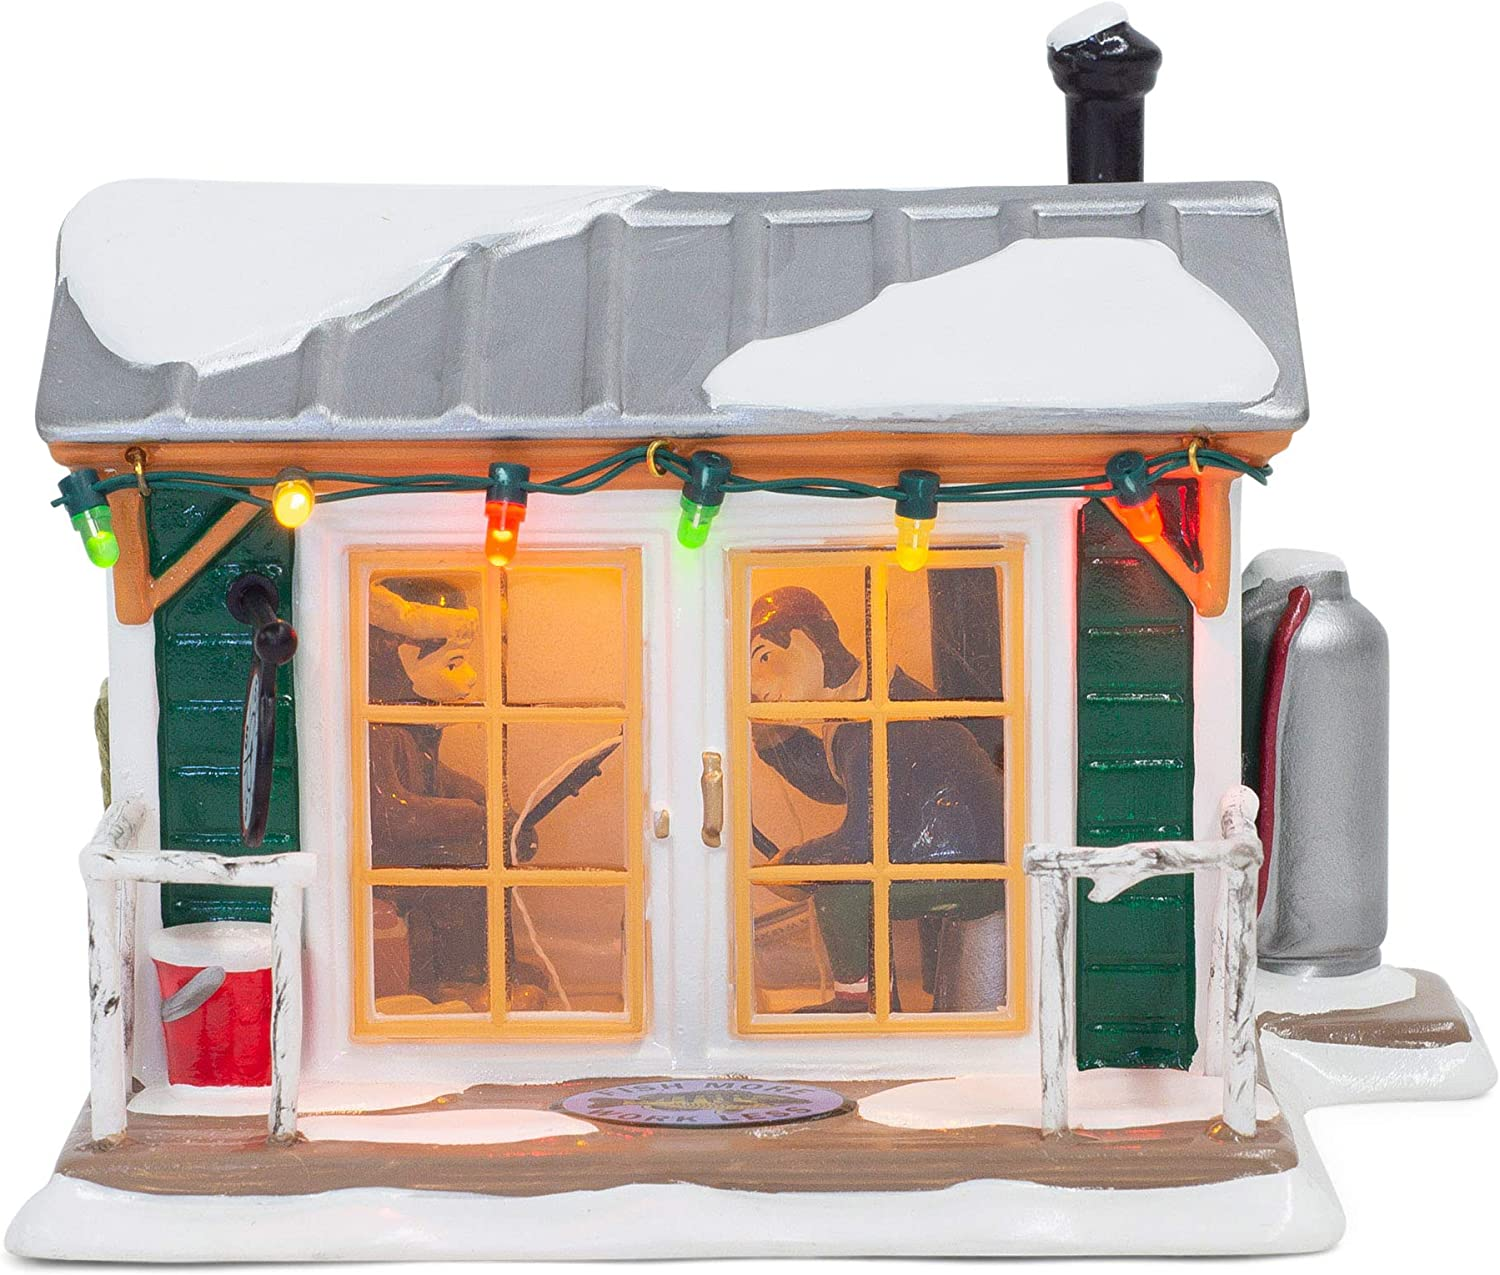 Department 56 Original Snow Village Home Sleet Home Fish Shack Lighted Building, 3.98-inch Height